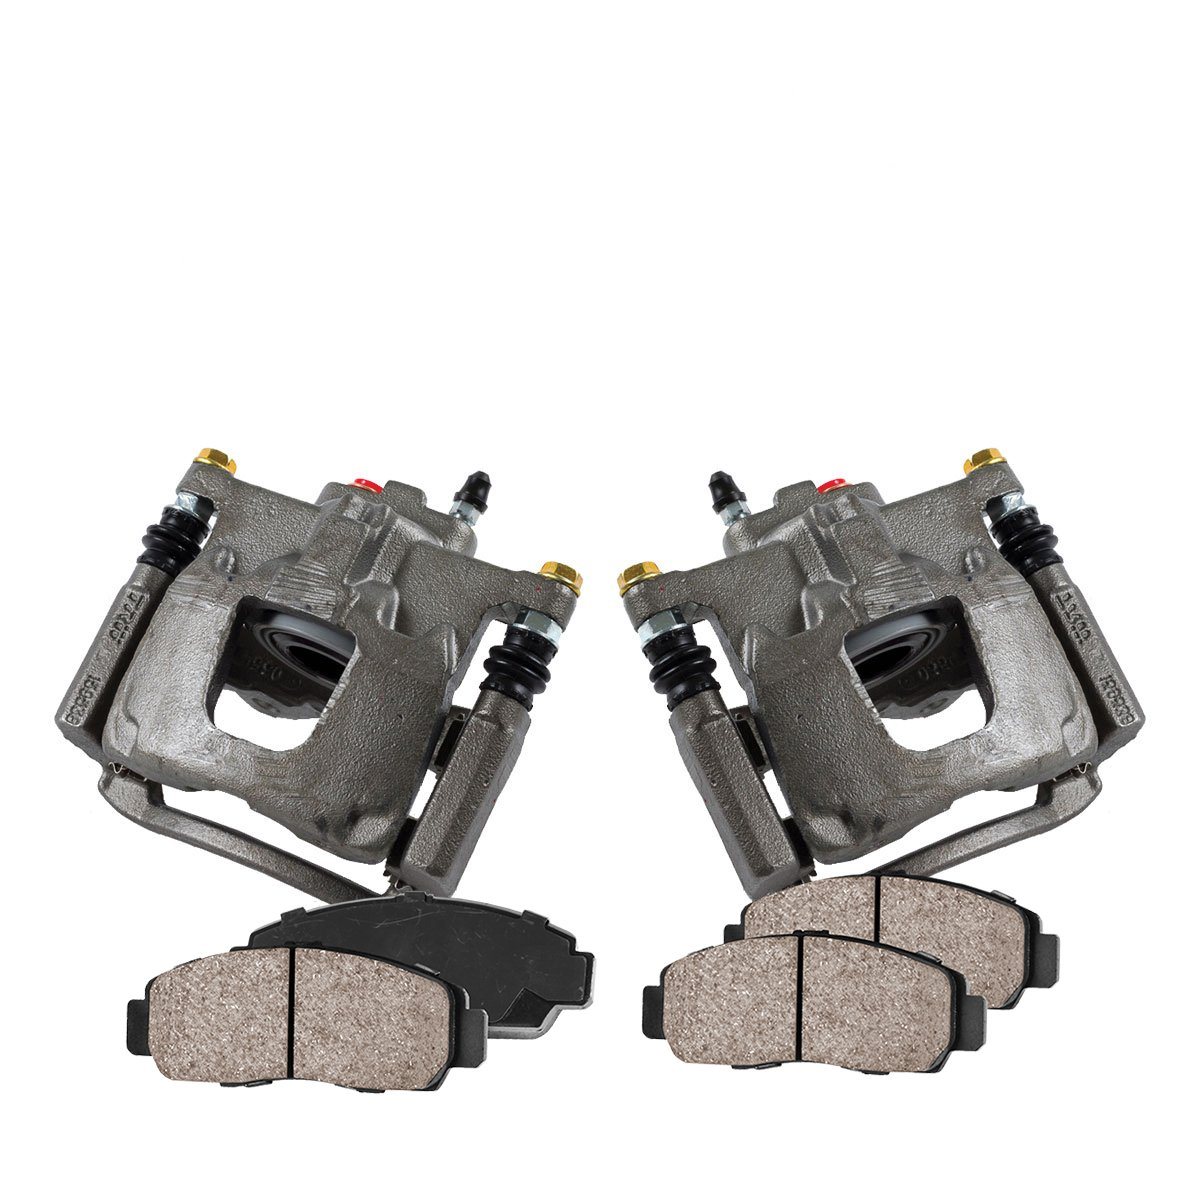 CCK02357 [2] REAR Premium Loaded OE Caliper Assembly Set + [4] Quiet Low Dust Ceramic Brake Pads Callahan Brake Parts